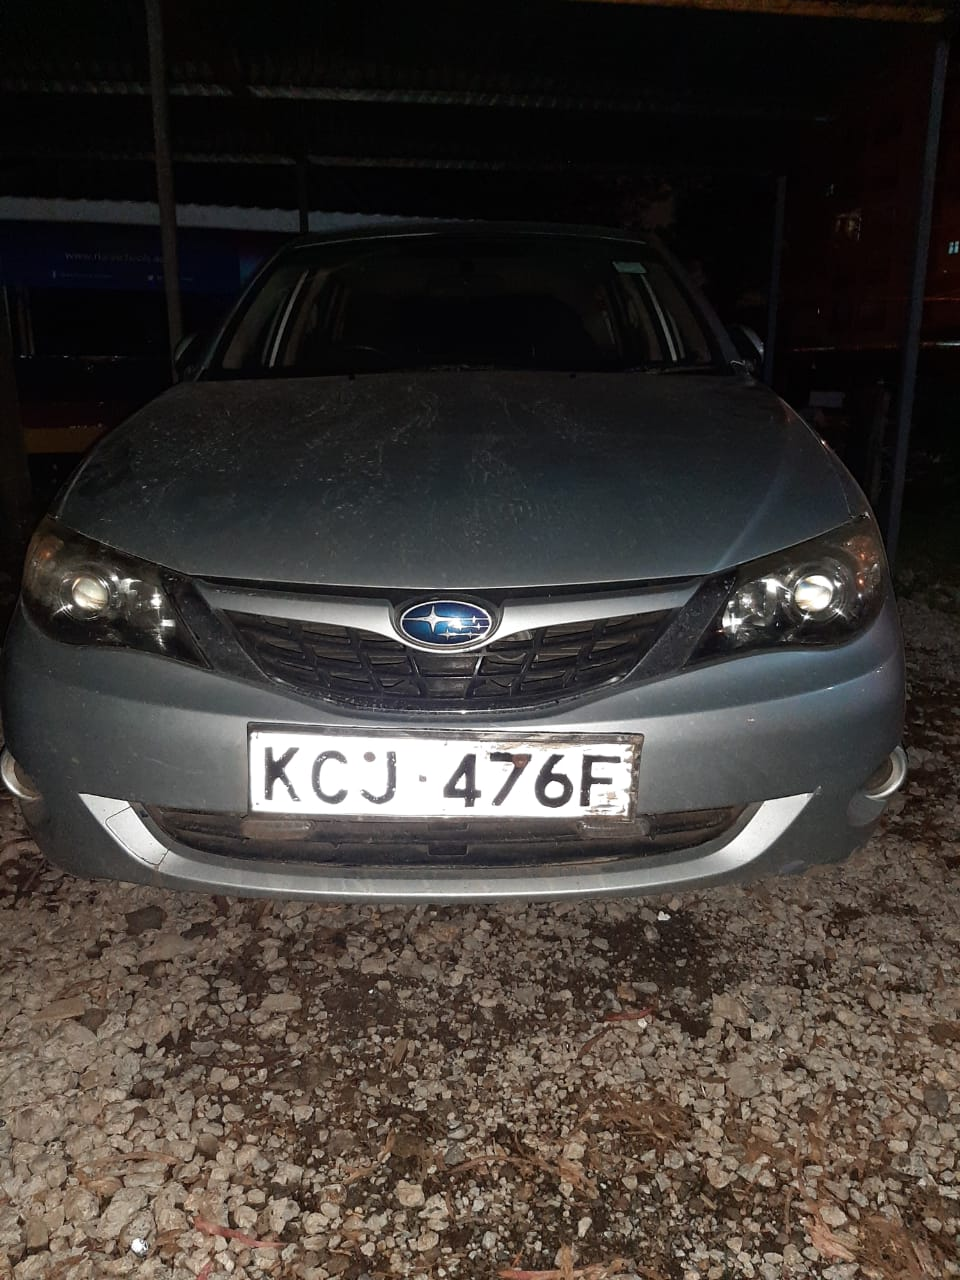 DCI Bust 7 Notorious City Car Robbers